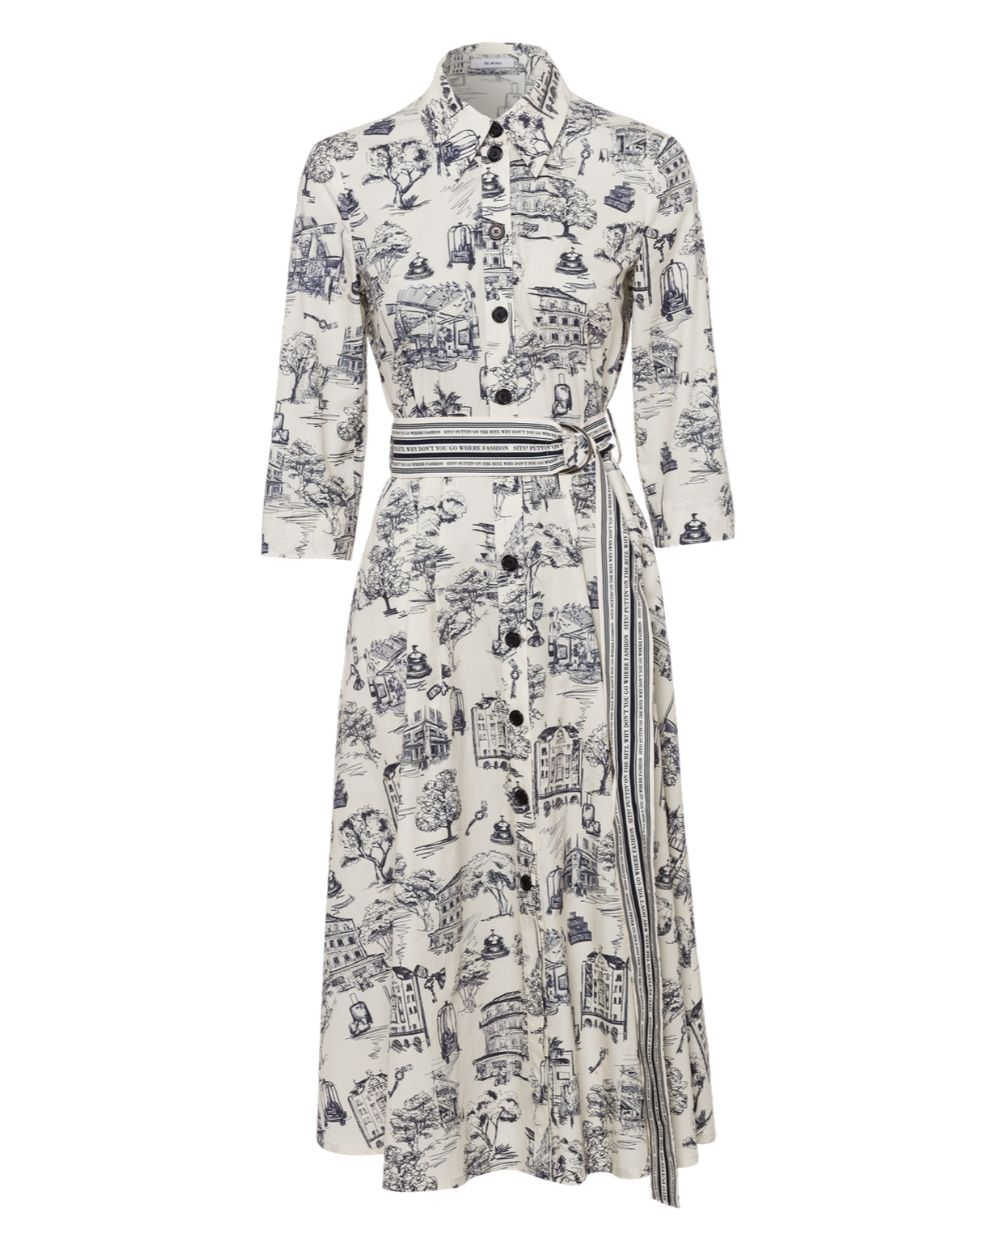 Riani Ivory Dress - Snooty Frox